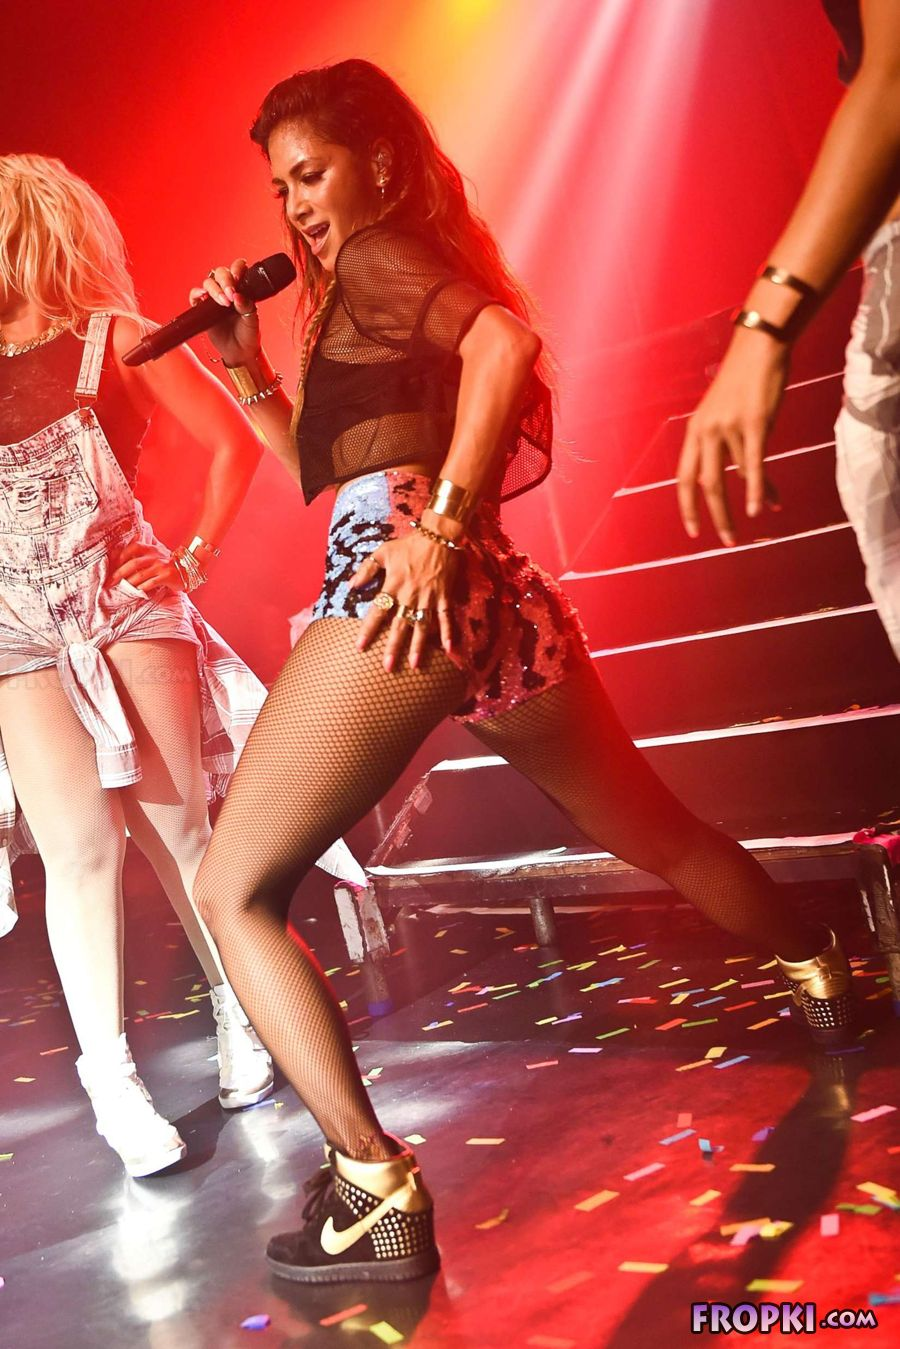 Nicole Scherzinger performing at G-A-Y in London